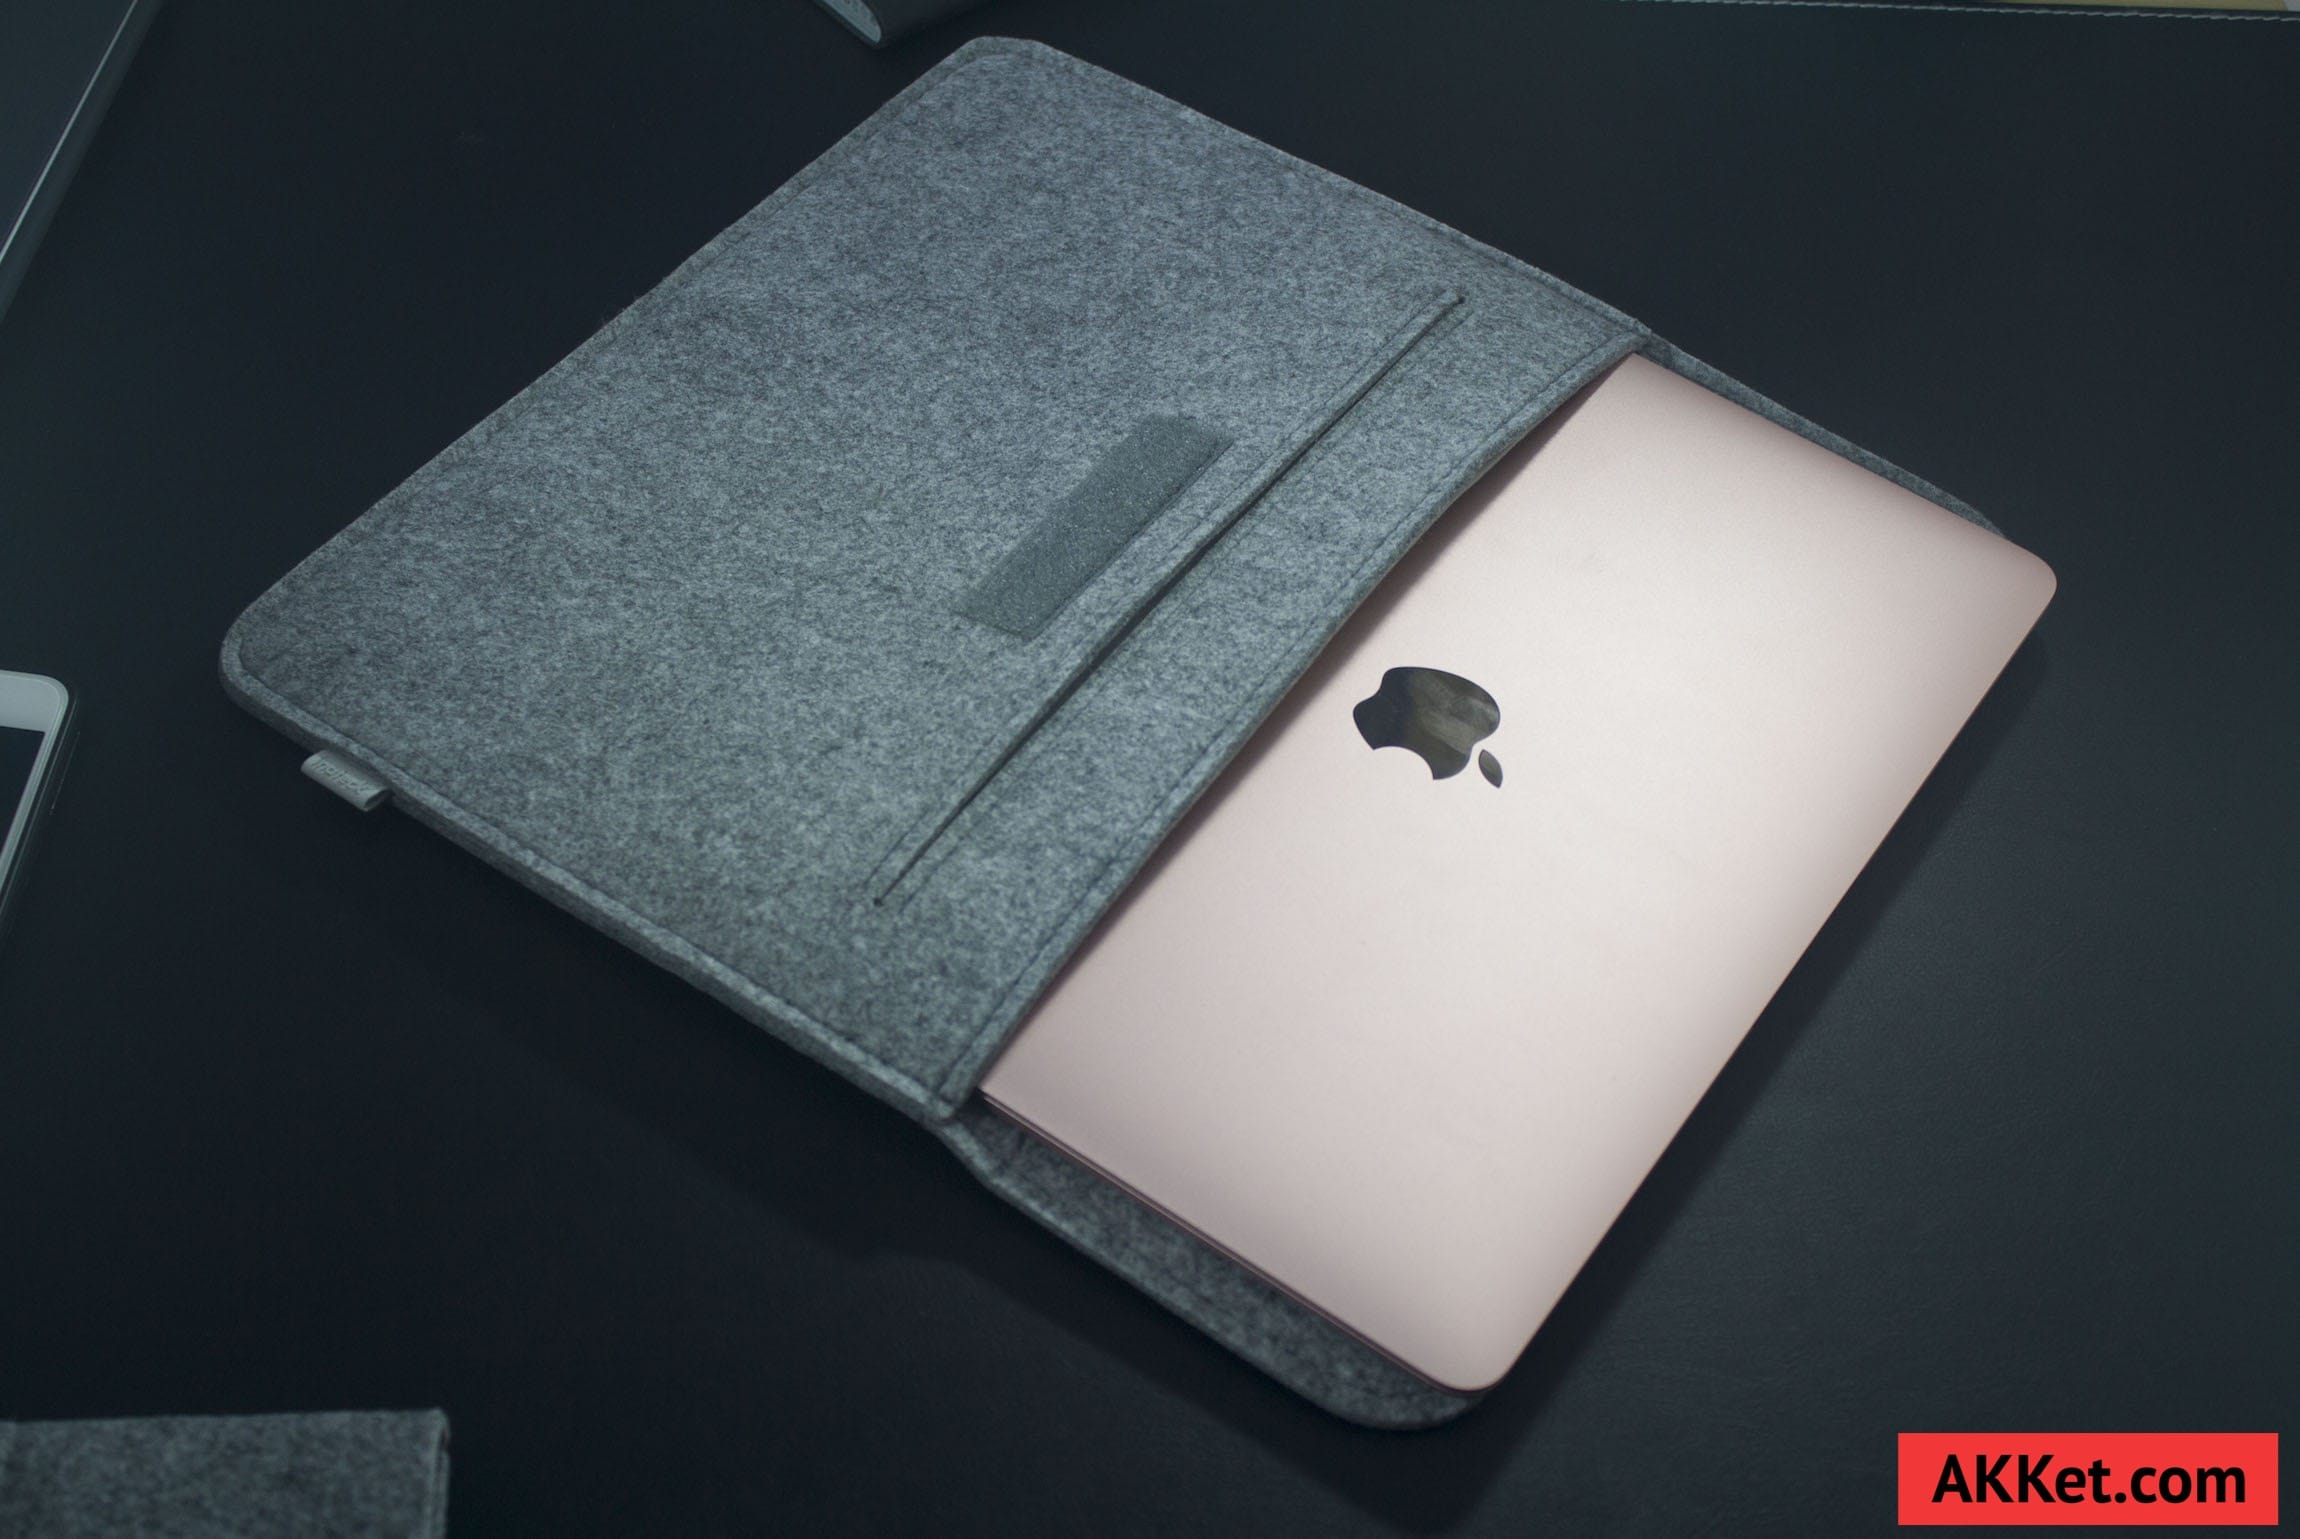 Inateck Case Tablet Sleeve для MacBook 12 Review 11